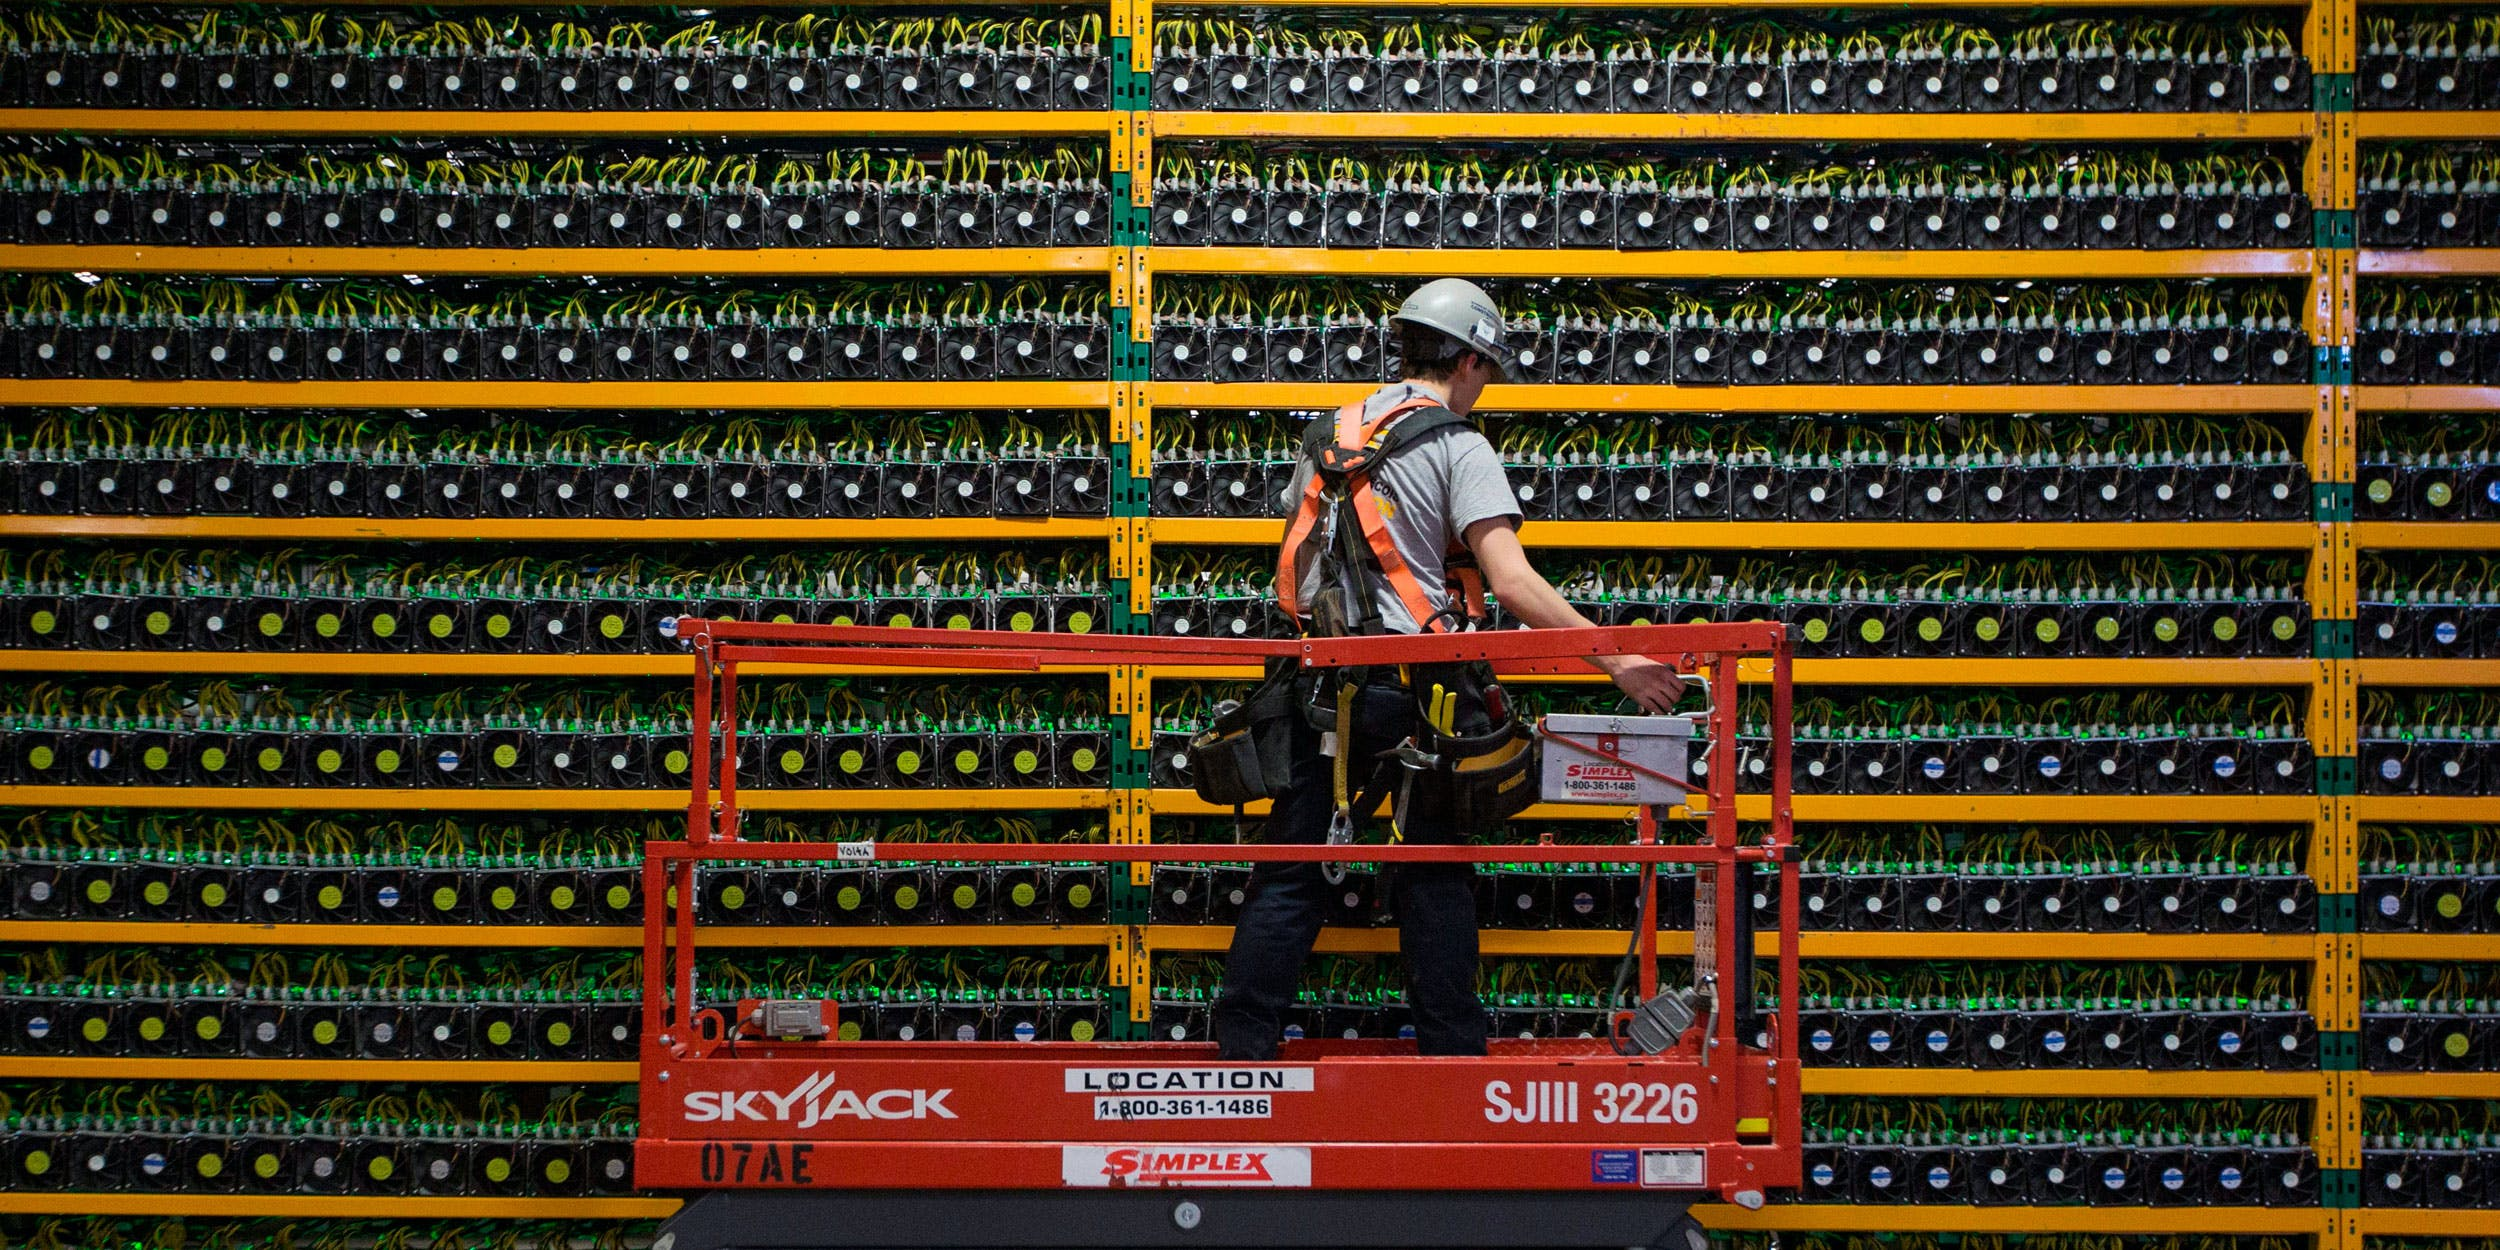 A technician inspects the backside of Bitcoin mining at Bitfarms in Saint Hyacinthe, Quebec on March 19, 2018. Bitcoin is a cryptocurrency and worldwide payment system. It is the first decentralized digital currency, as the system works based on the Blockchain technology without a central bank or single administrator. (Photo by Lars Hagberg /AFP/Getty Images)